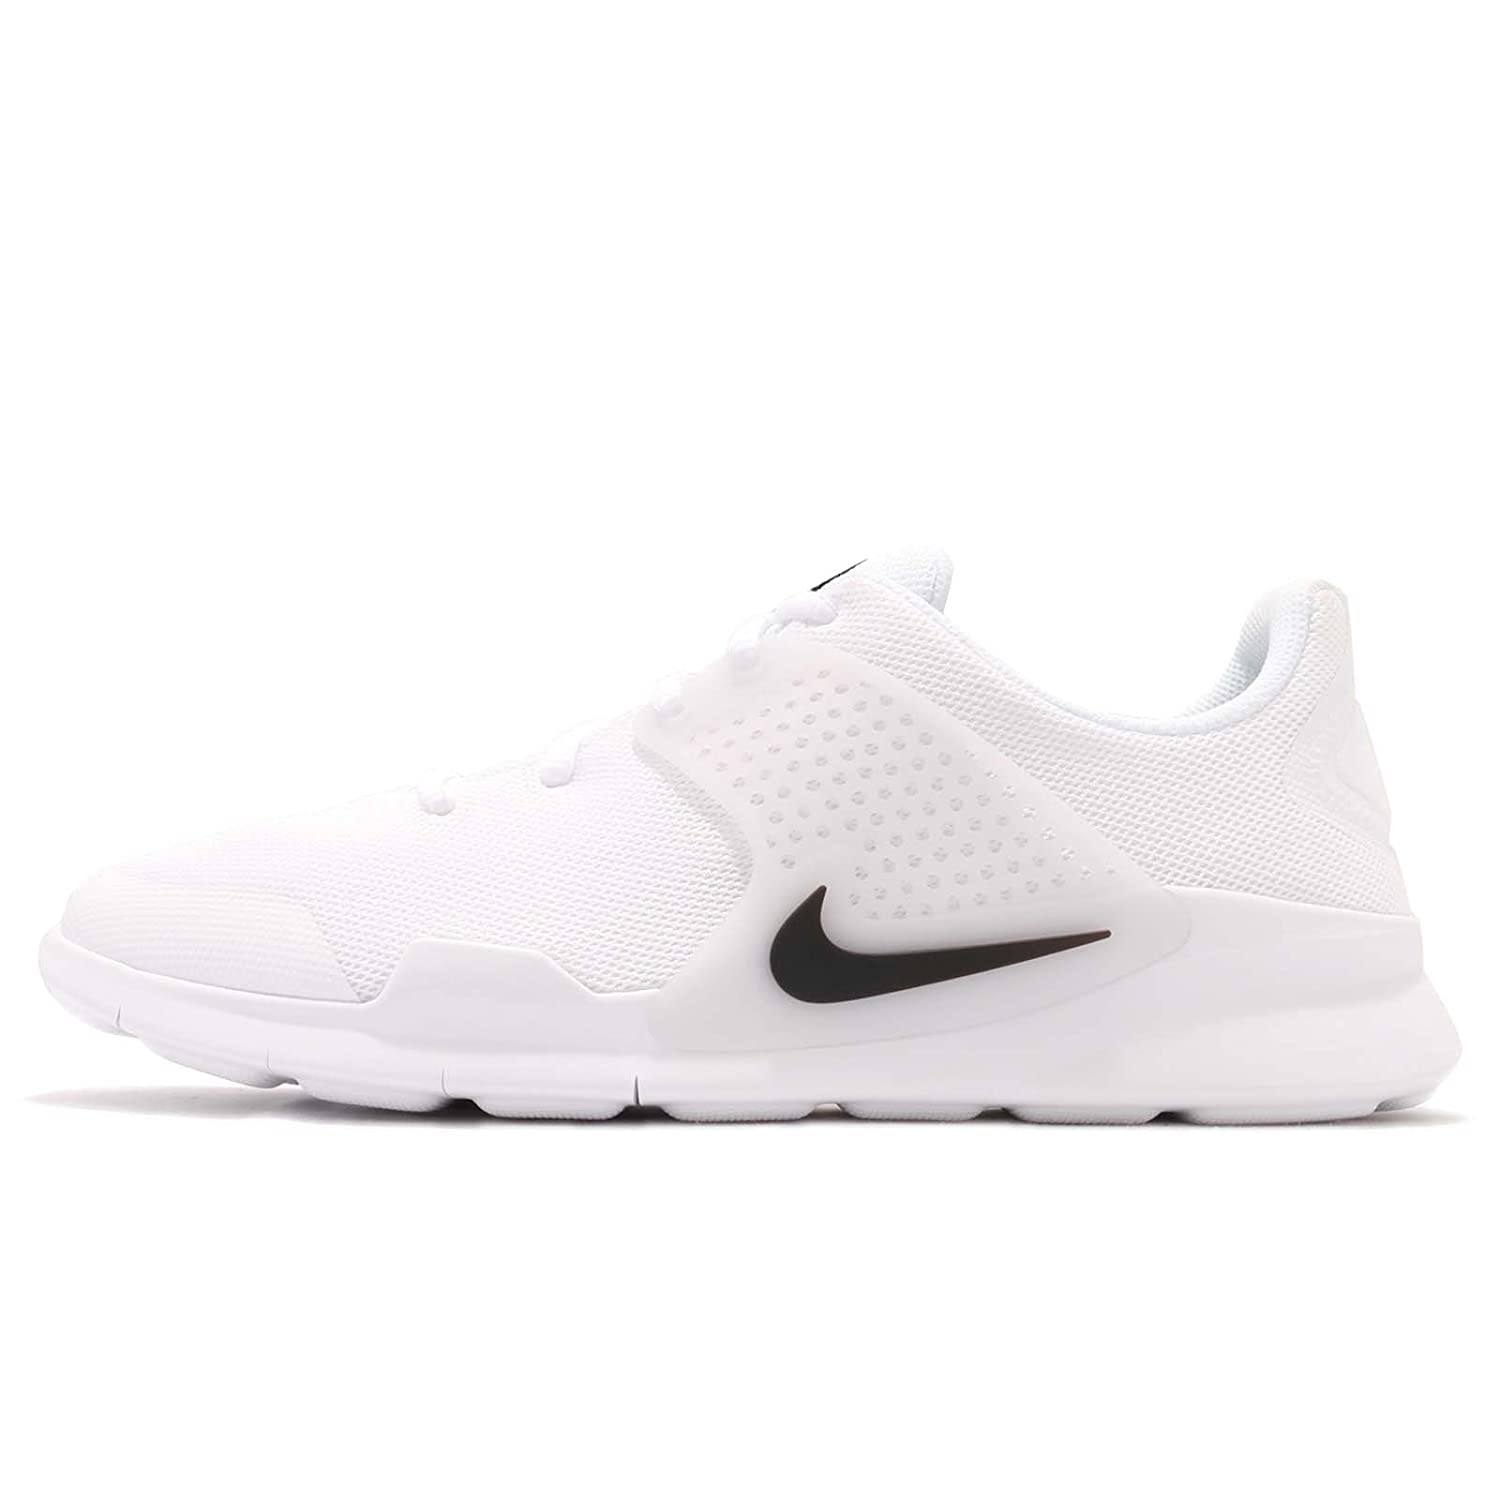 NIKE Men's Arrowz, White/Black B00KLPG3VO 8 D(M) US|White/Black